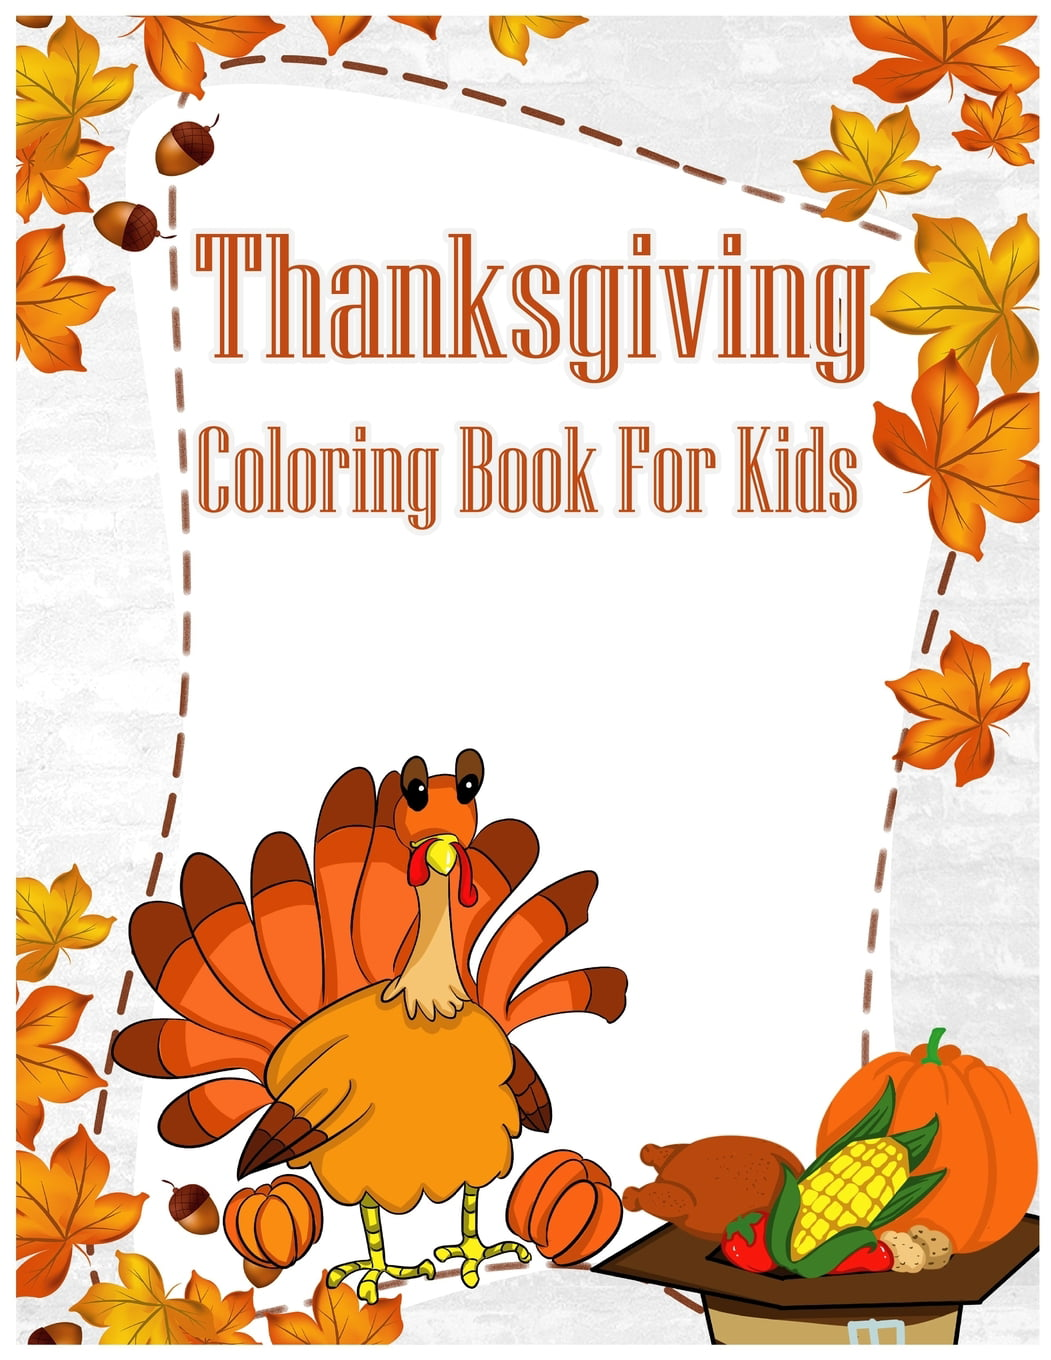 Thanksgiving Coloring Book For Kids : A Big Book Of Easy Stress Relieving Coloring  Pages For Kids, Teens, Adults And Seniors (Thanksgiving Coloring Activity  Books) (Paperback) - Walmart.com - Walmart.com